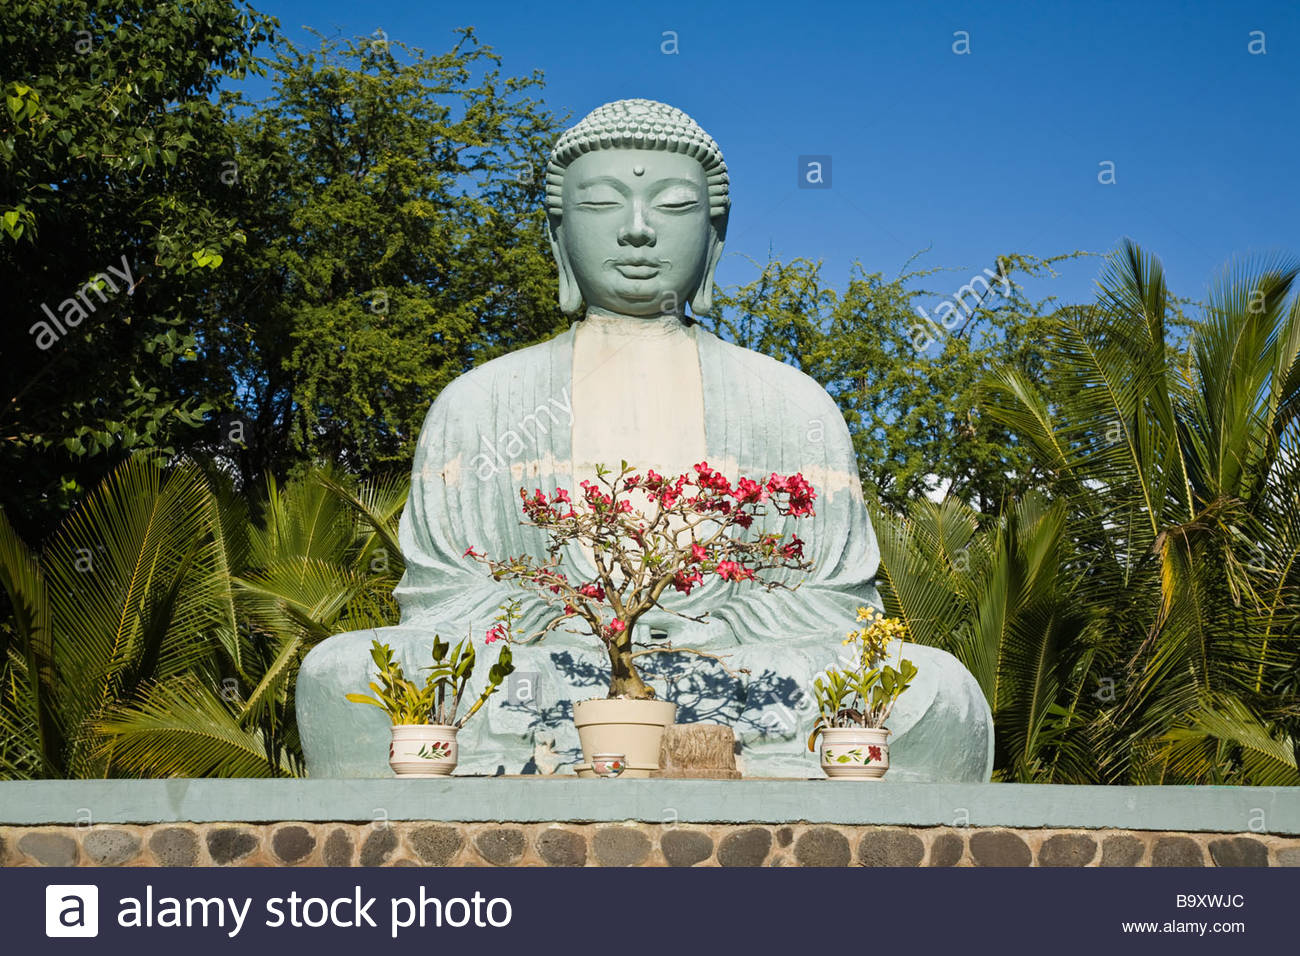 lahaina buddhist personals Giant buddha at lahaina jodo mission, largest buddha outside of japan, maui  sight and sights to see attractions and sights in maui hawaii.